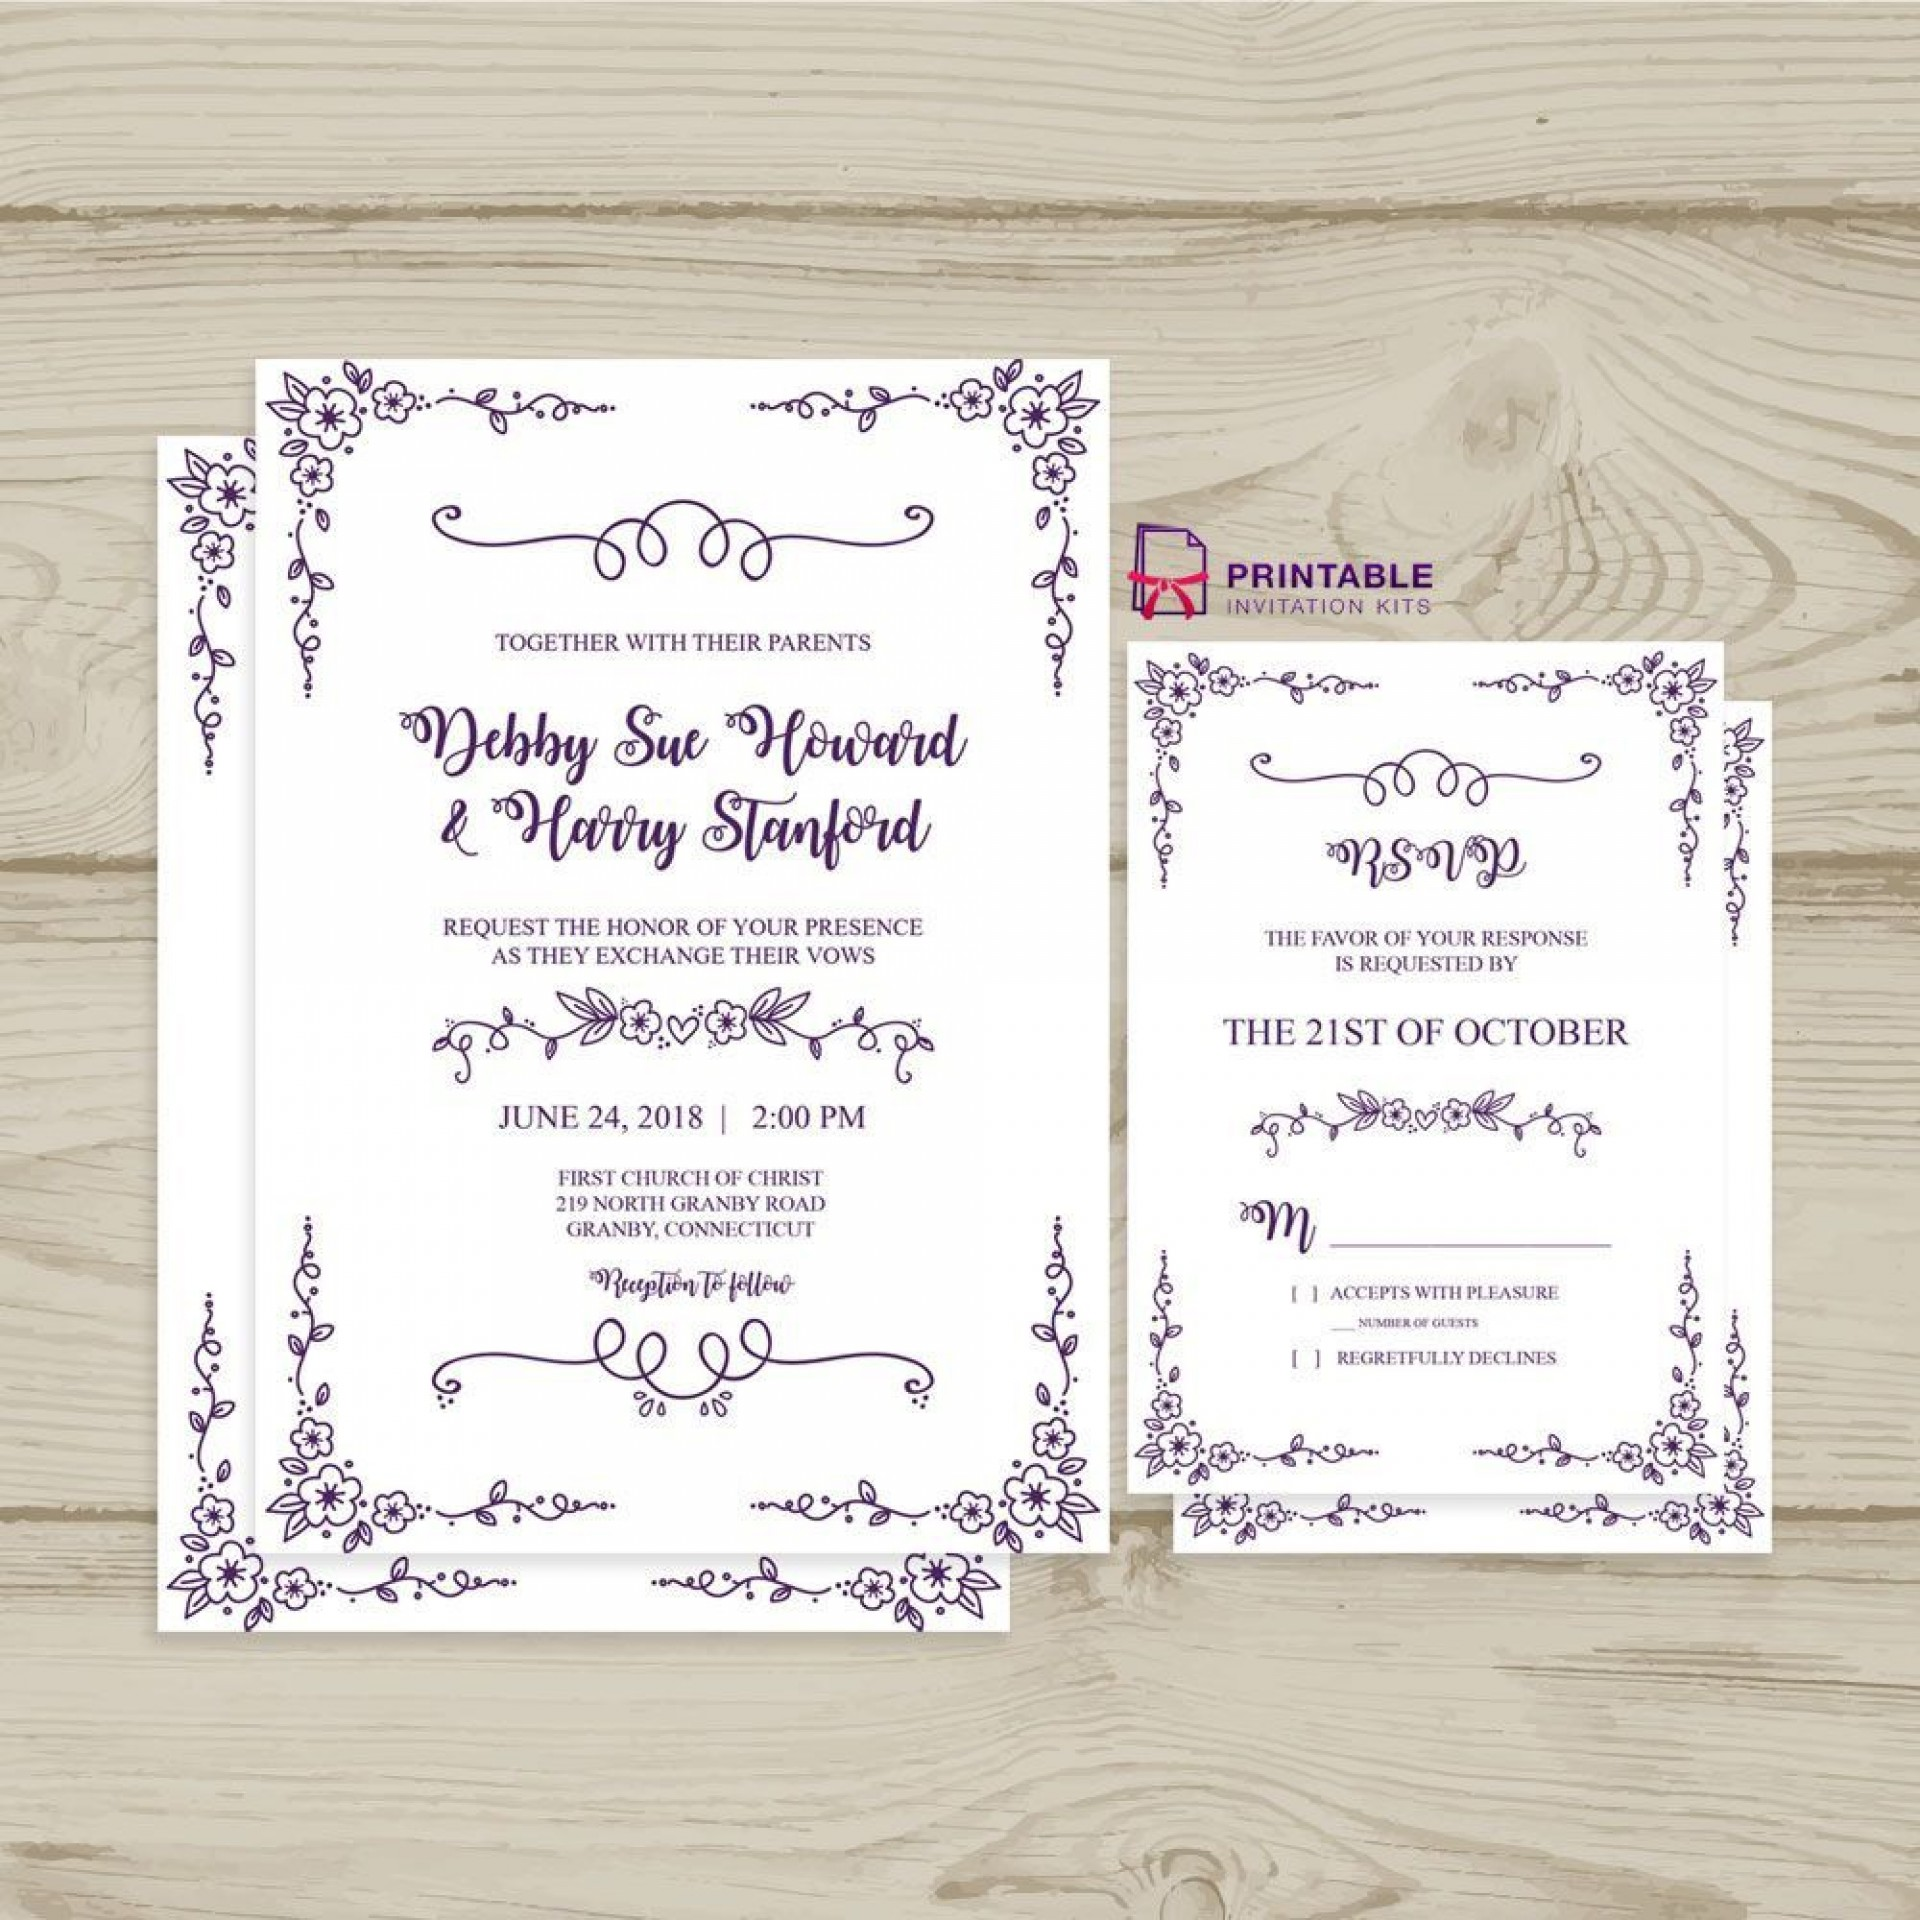 001 Best Free Download Wedding Invitation Maker Software Design  Video For Window 7 Card1920